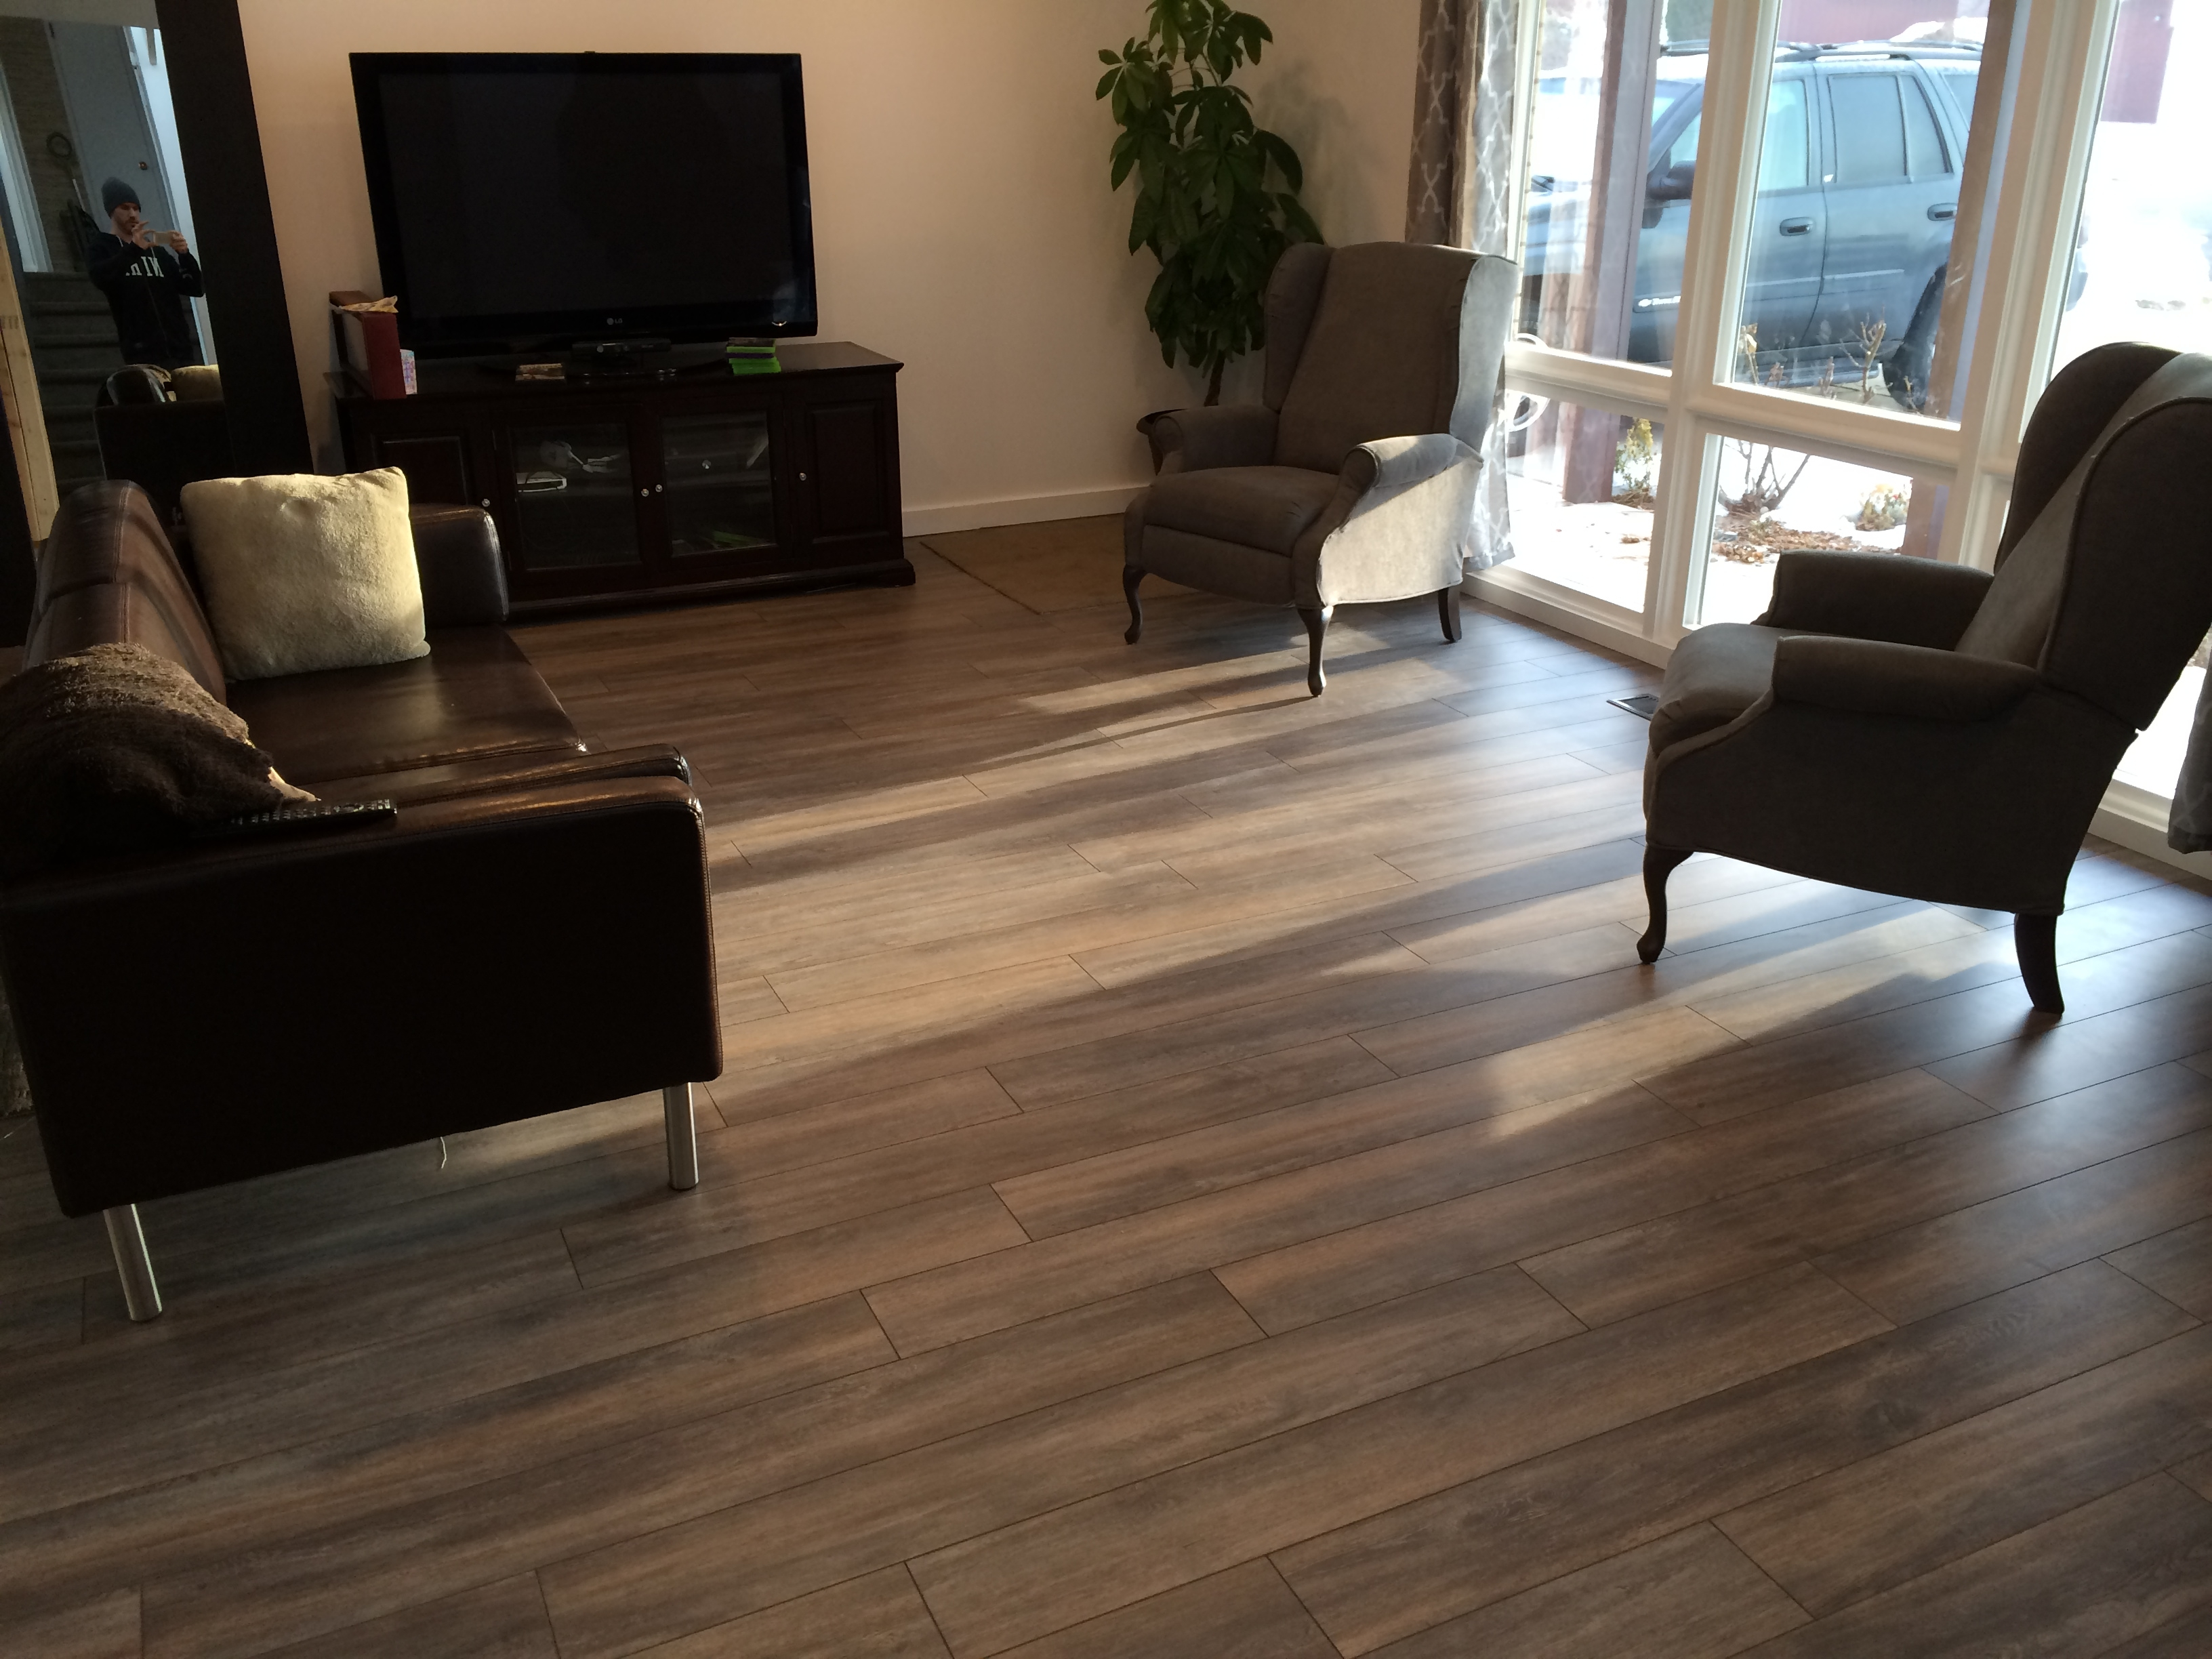 How To Determine The Direction To Install My Laminate Flooring - Best flooring for entire house